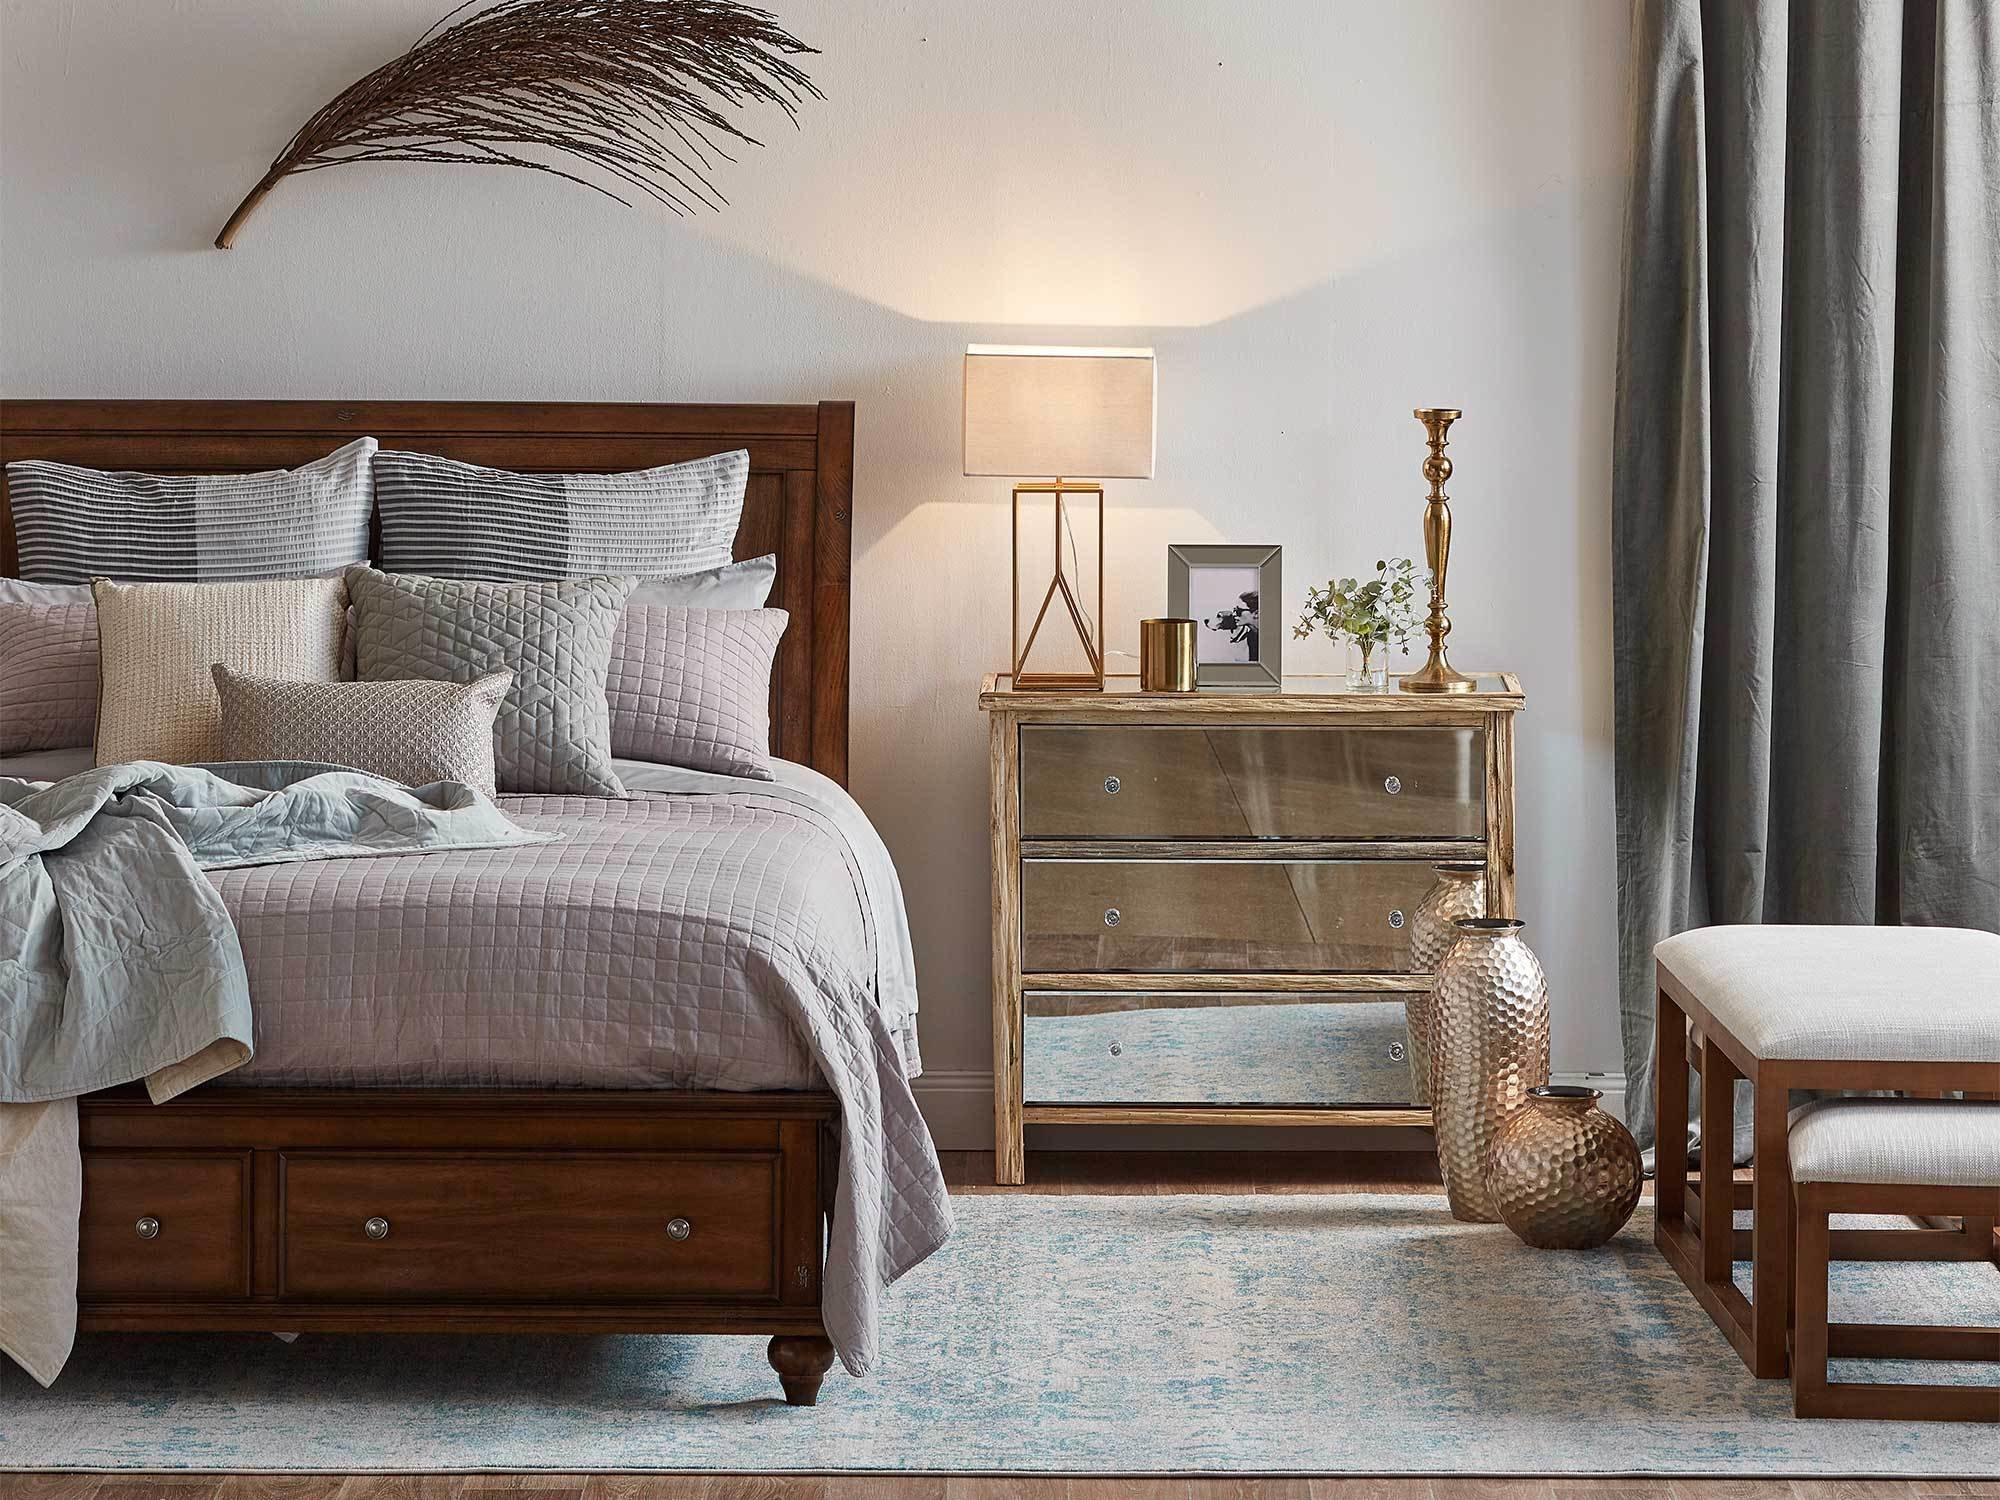 Best Bedroom Ideas With Curtains And Drapes – Realestate Com Au With Pictures